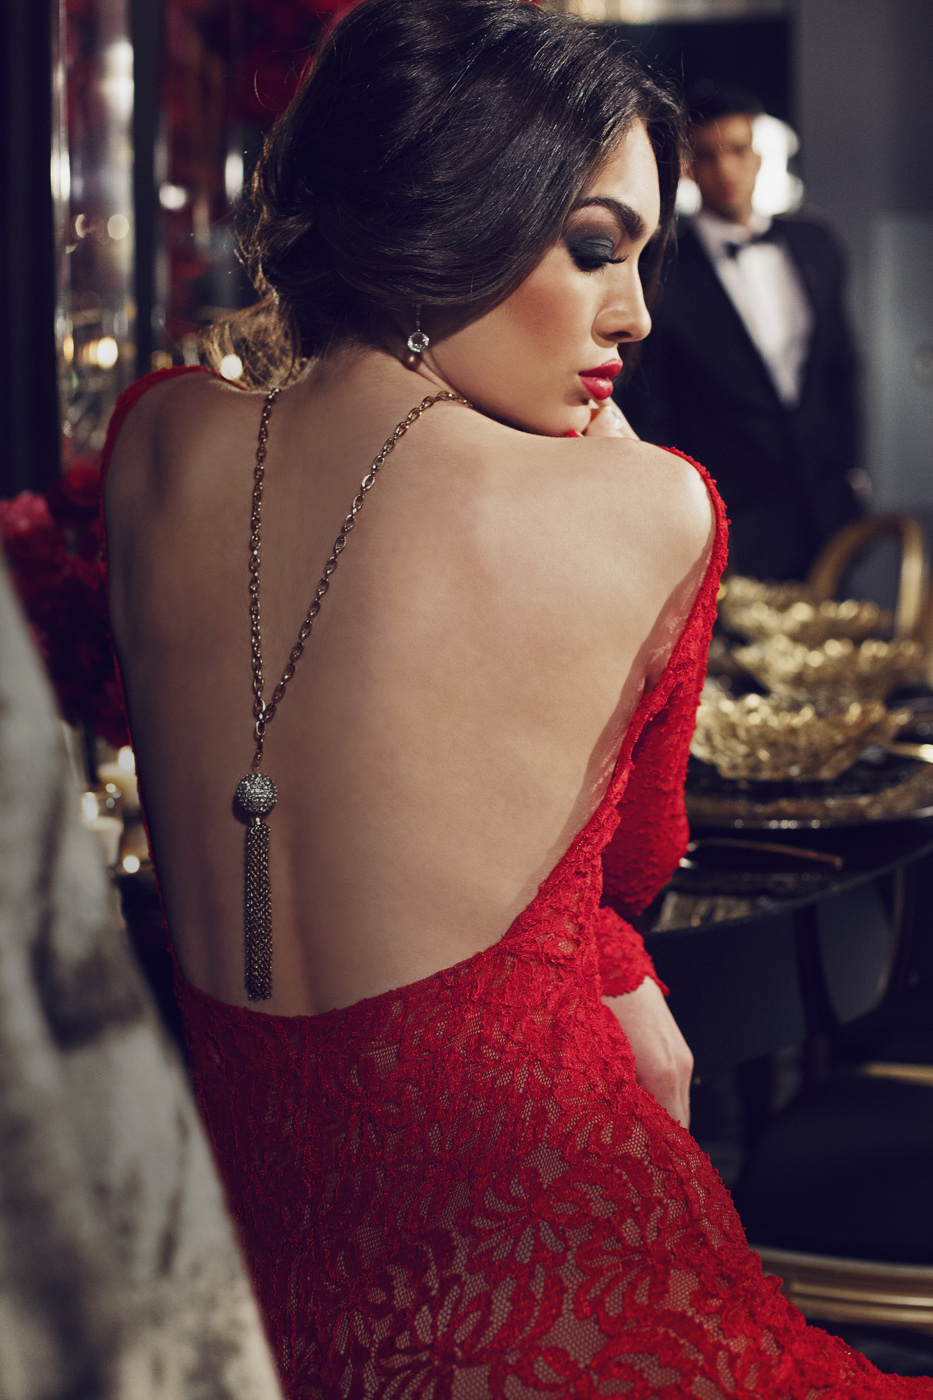 007_DukePhotography_DukeImages_Editorial_RedDress.jpg